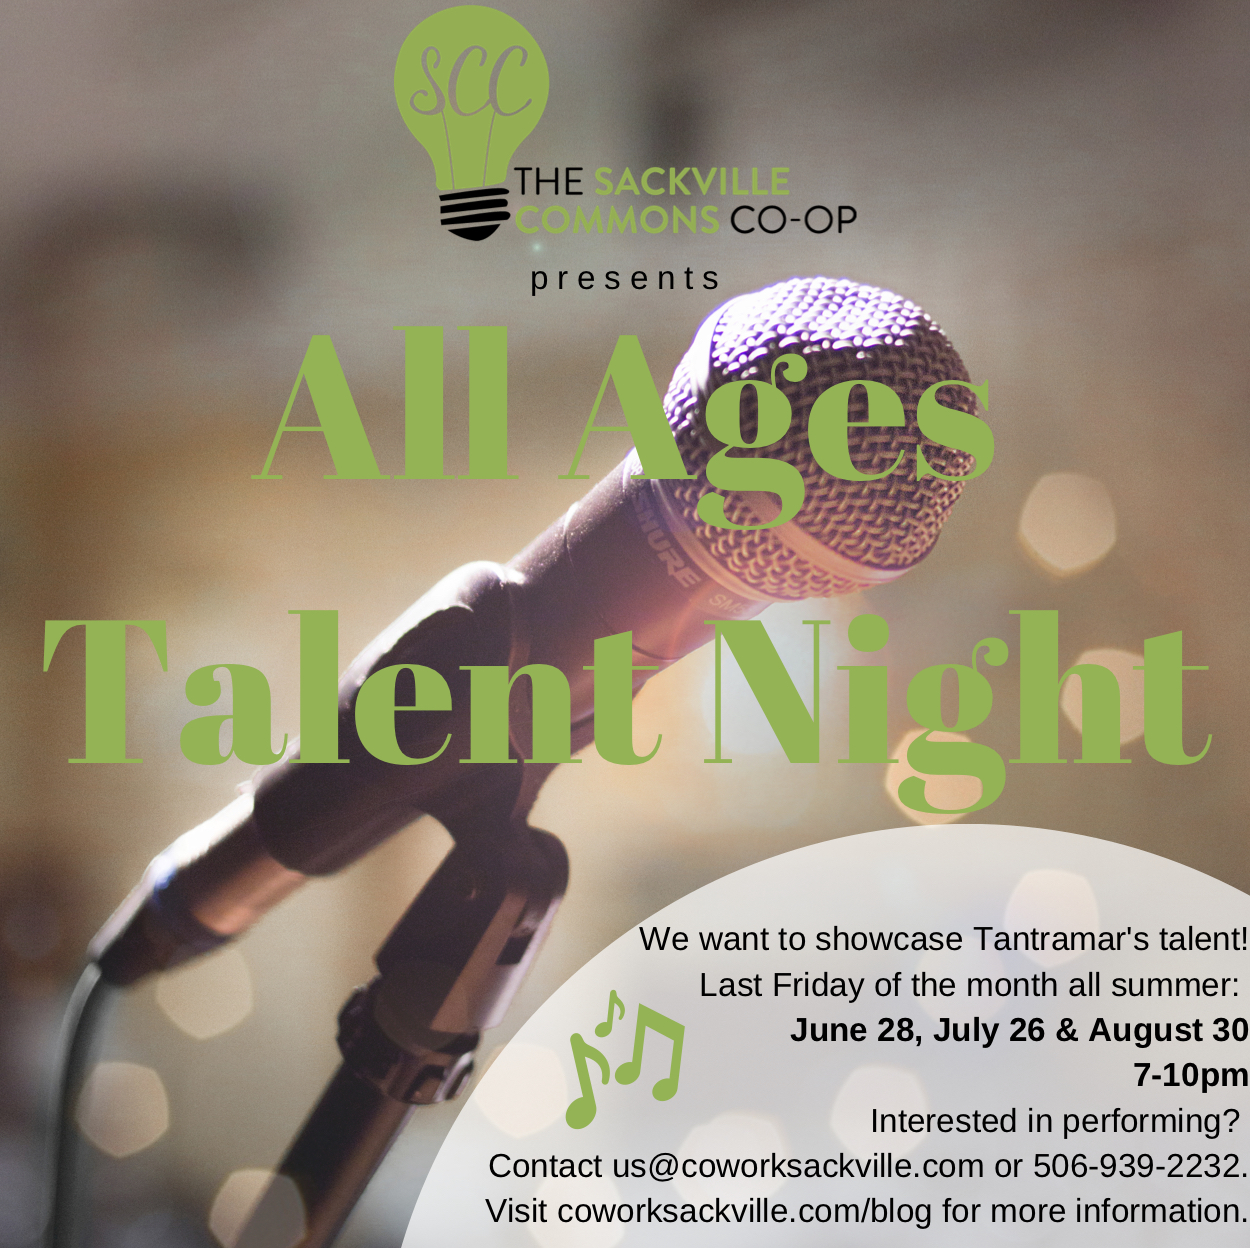 All Ages Talent Night